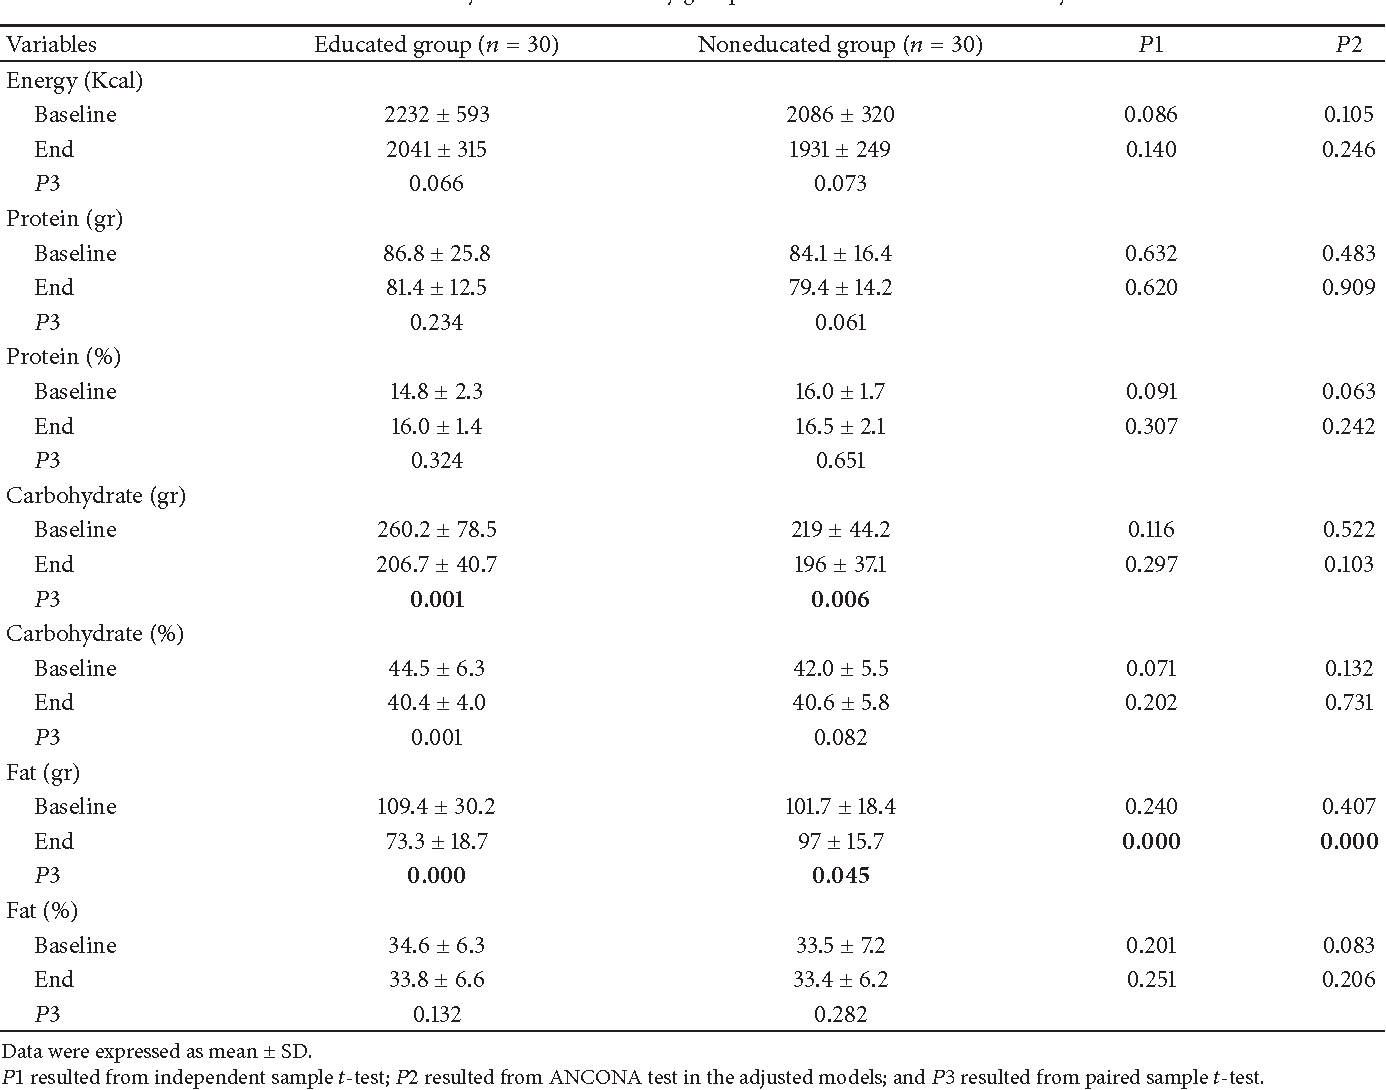 Table 2: Dietary intakes of the study groups at the baseline and end of study.